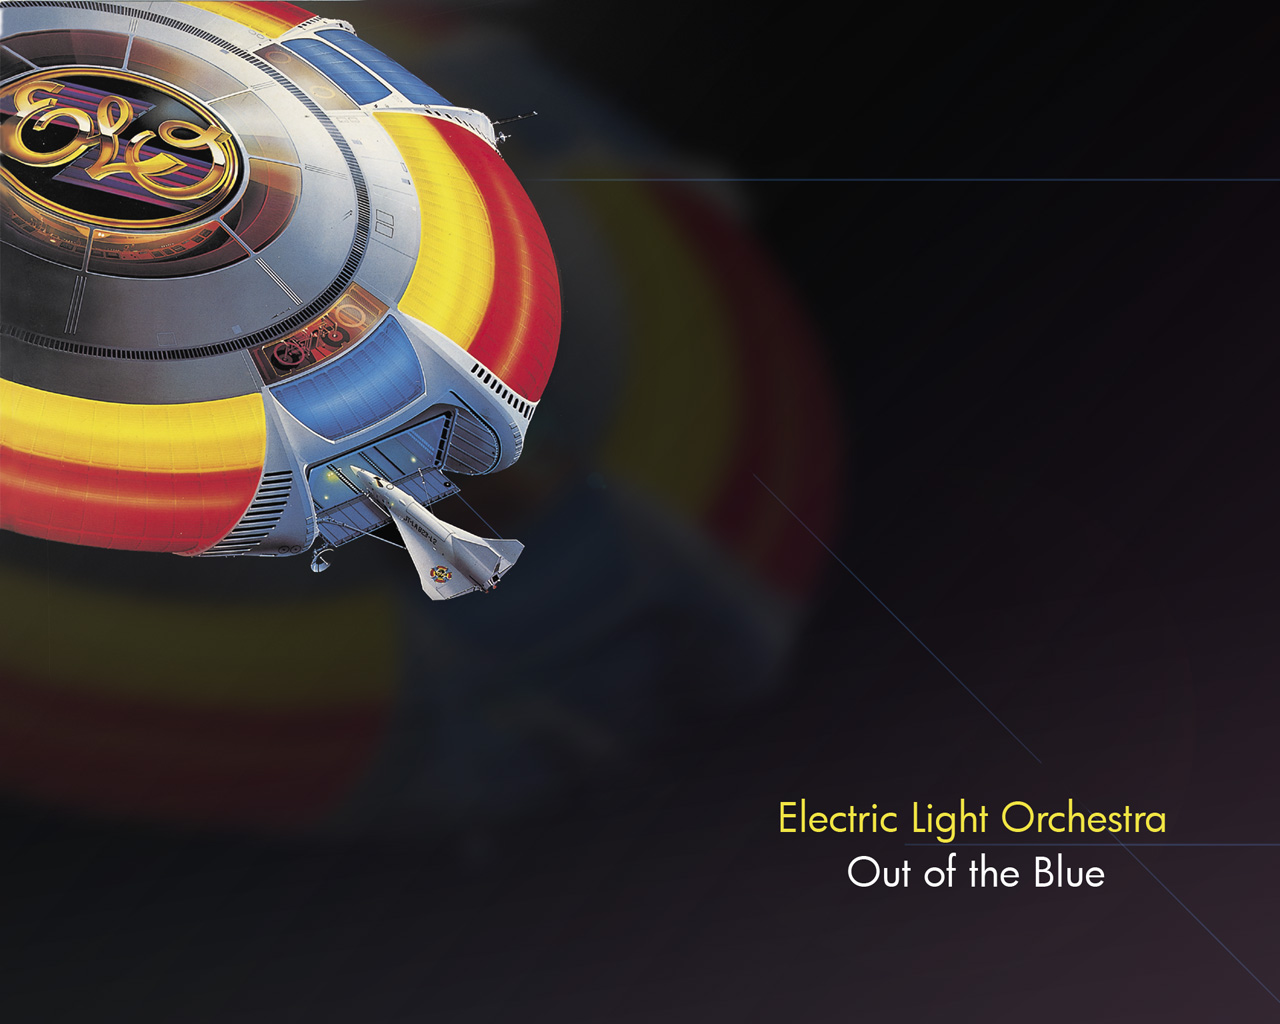 ELO  Out of the Blue Wallpaper by Kotori 1280x1024